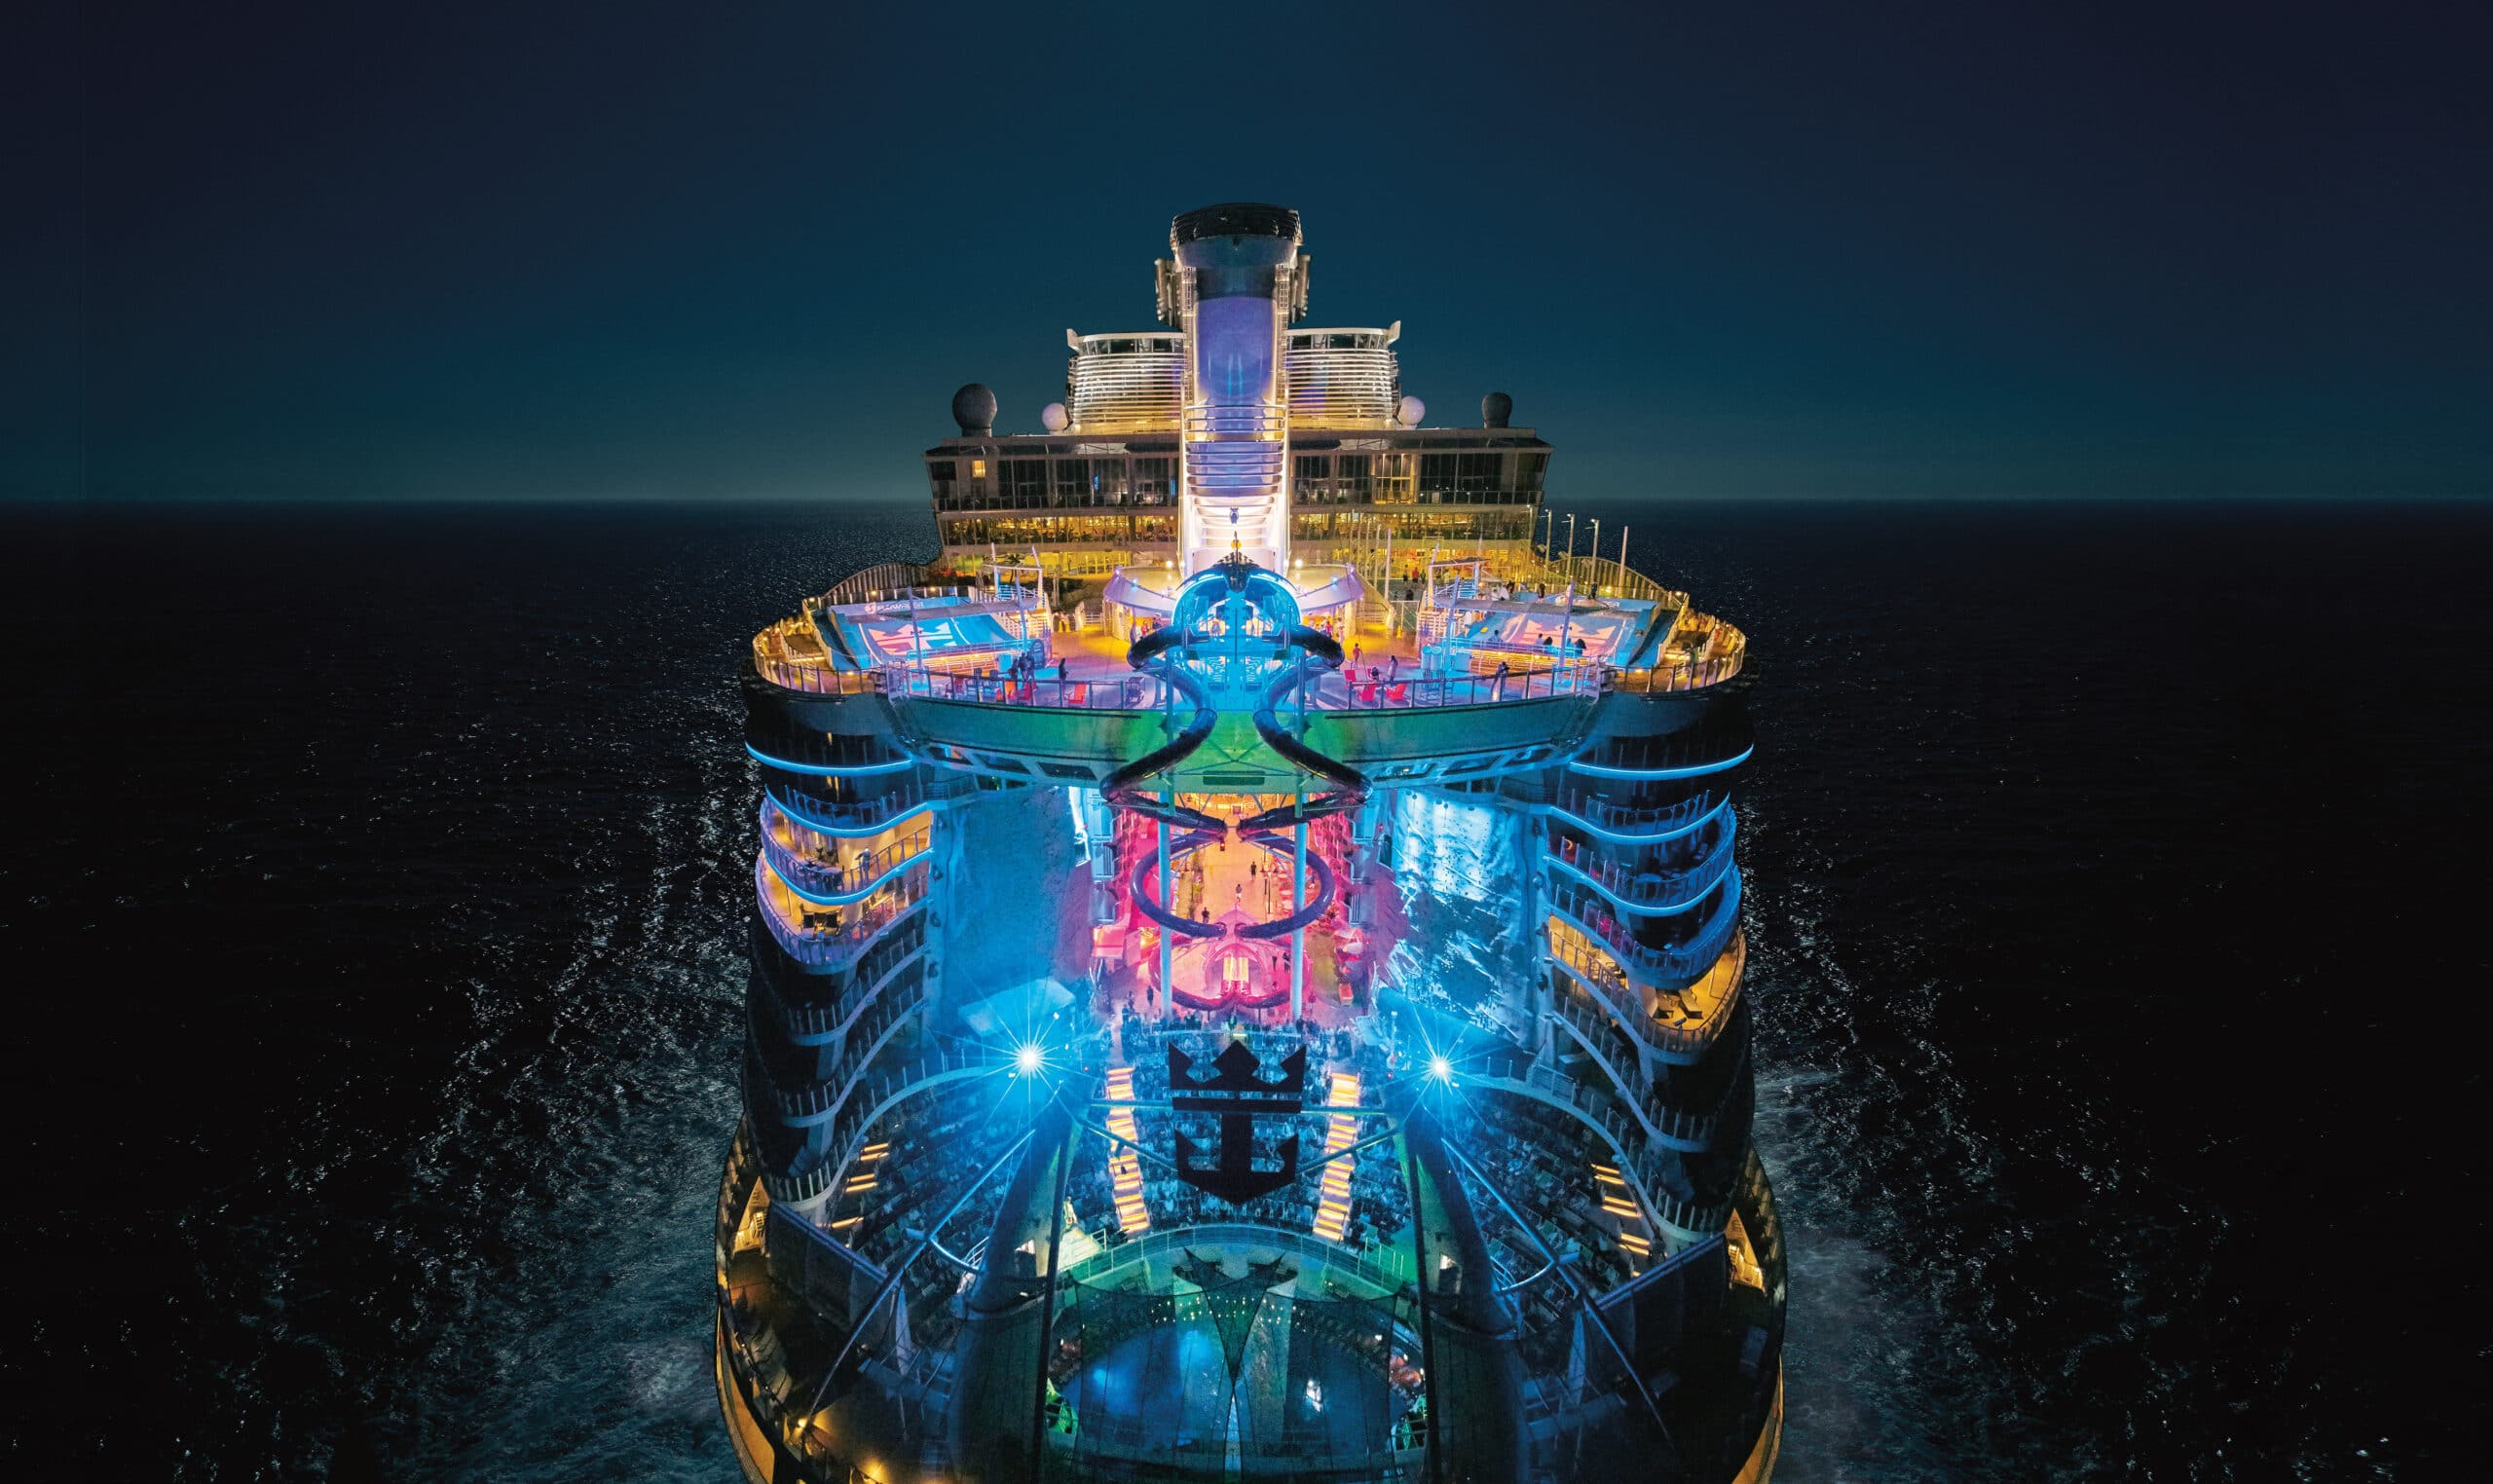 Royal-Caribbean-International-Harmony-Of-the-Seas-